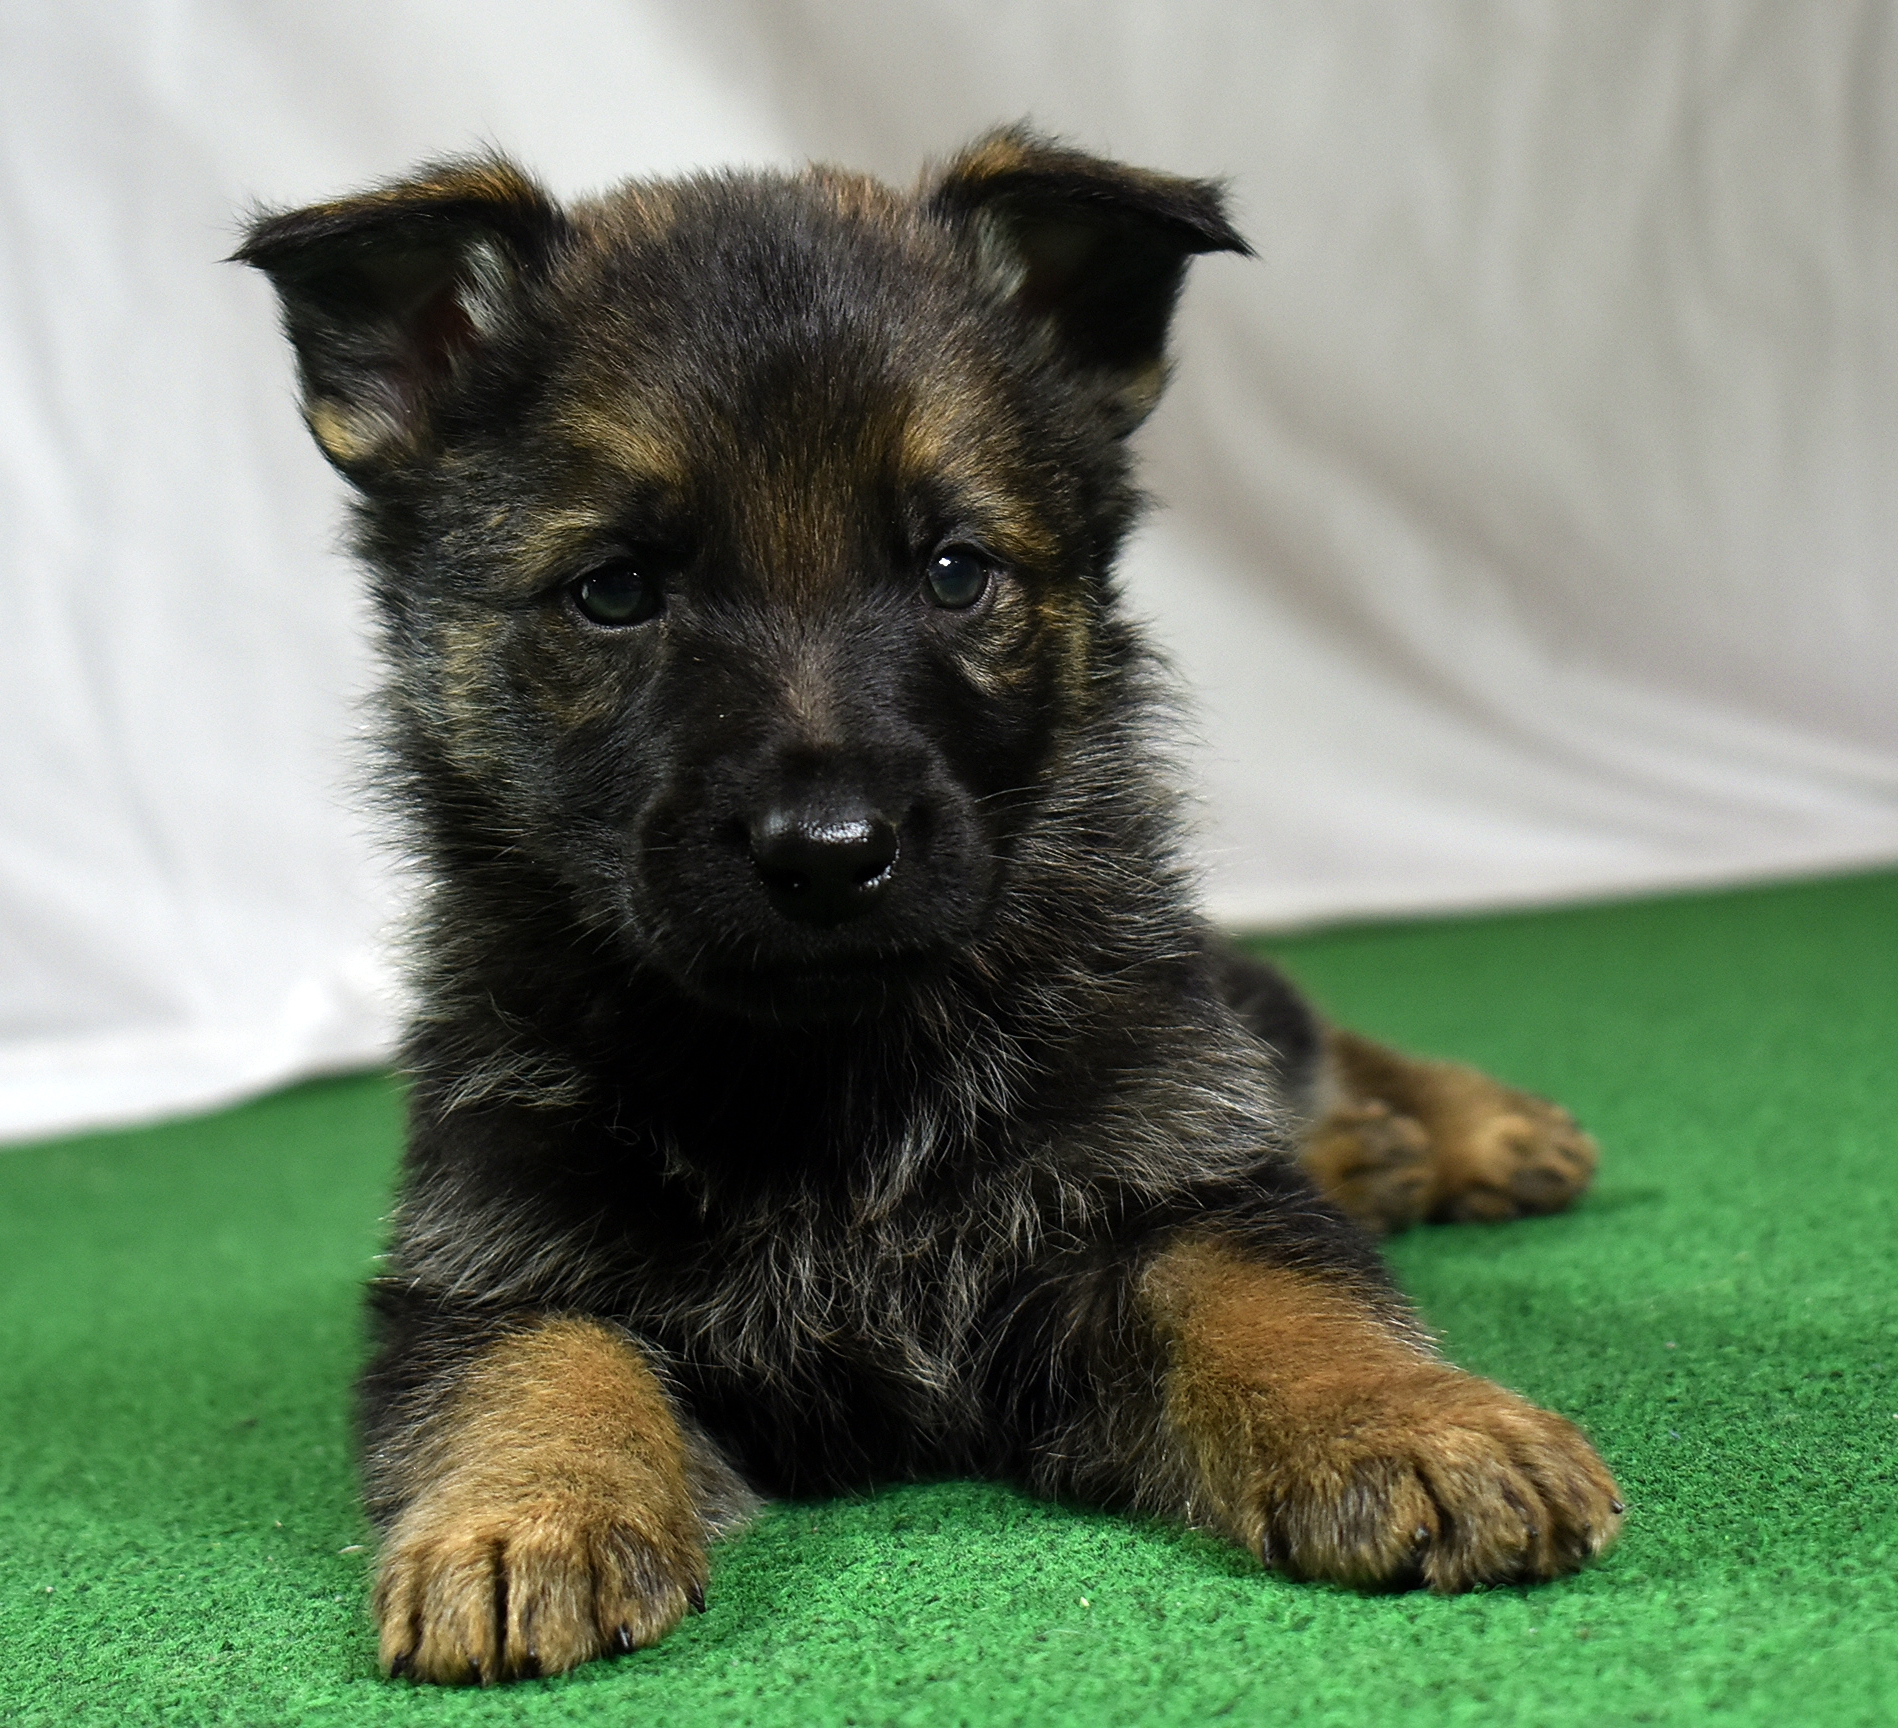 39-day old German Shepherd puppy